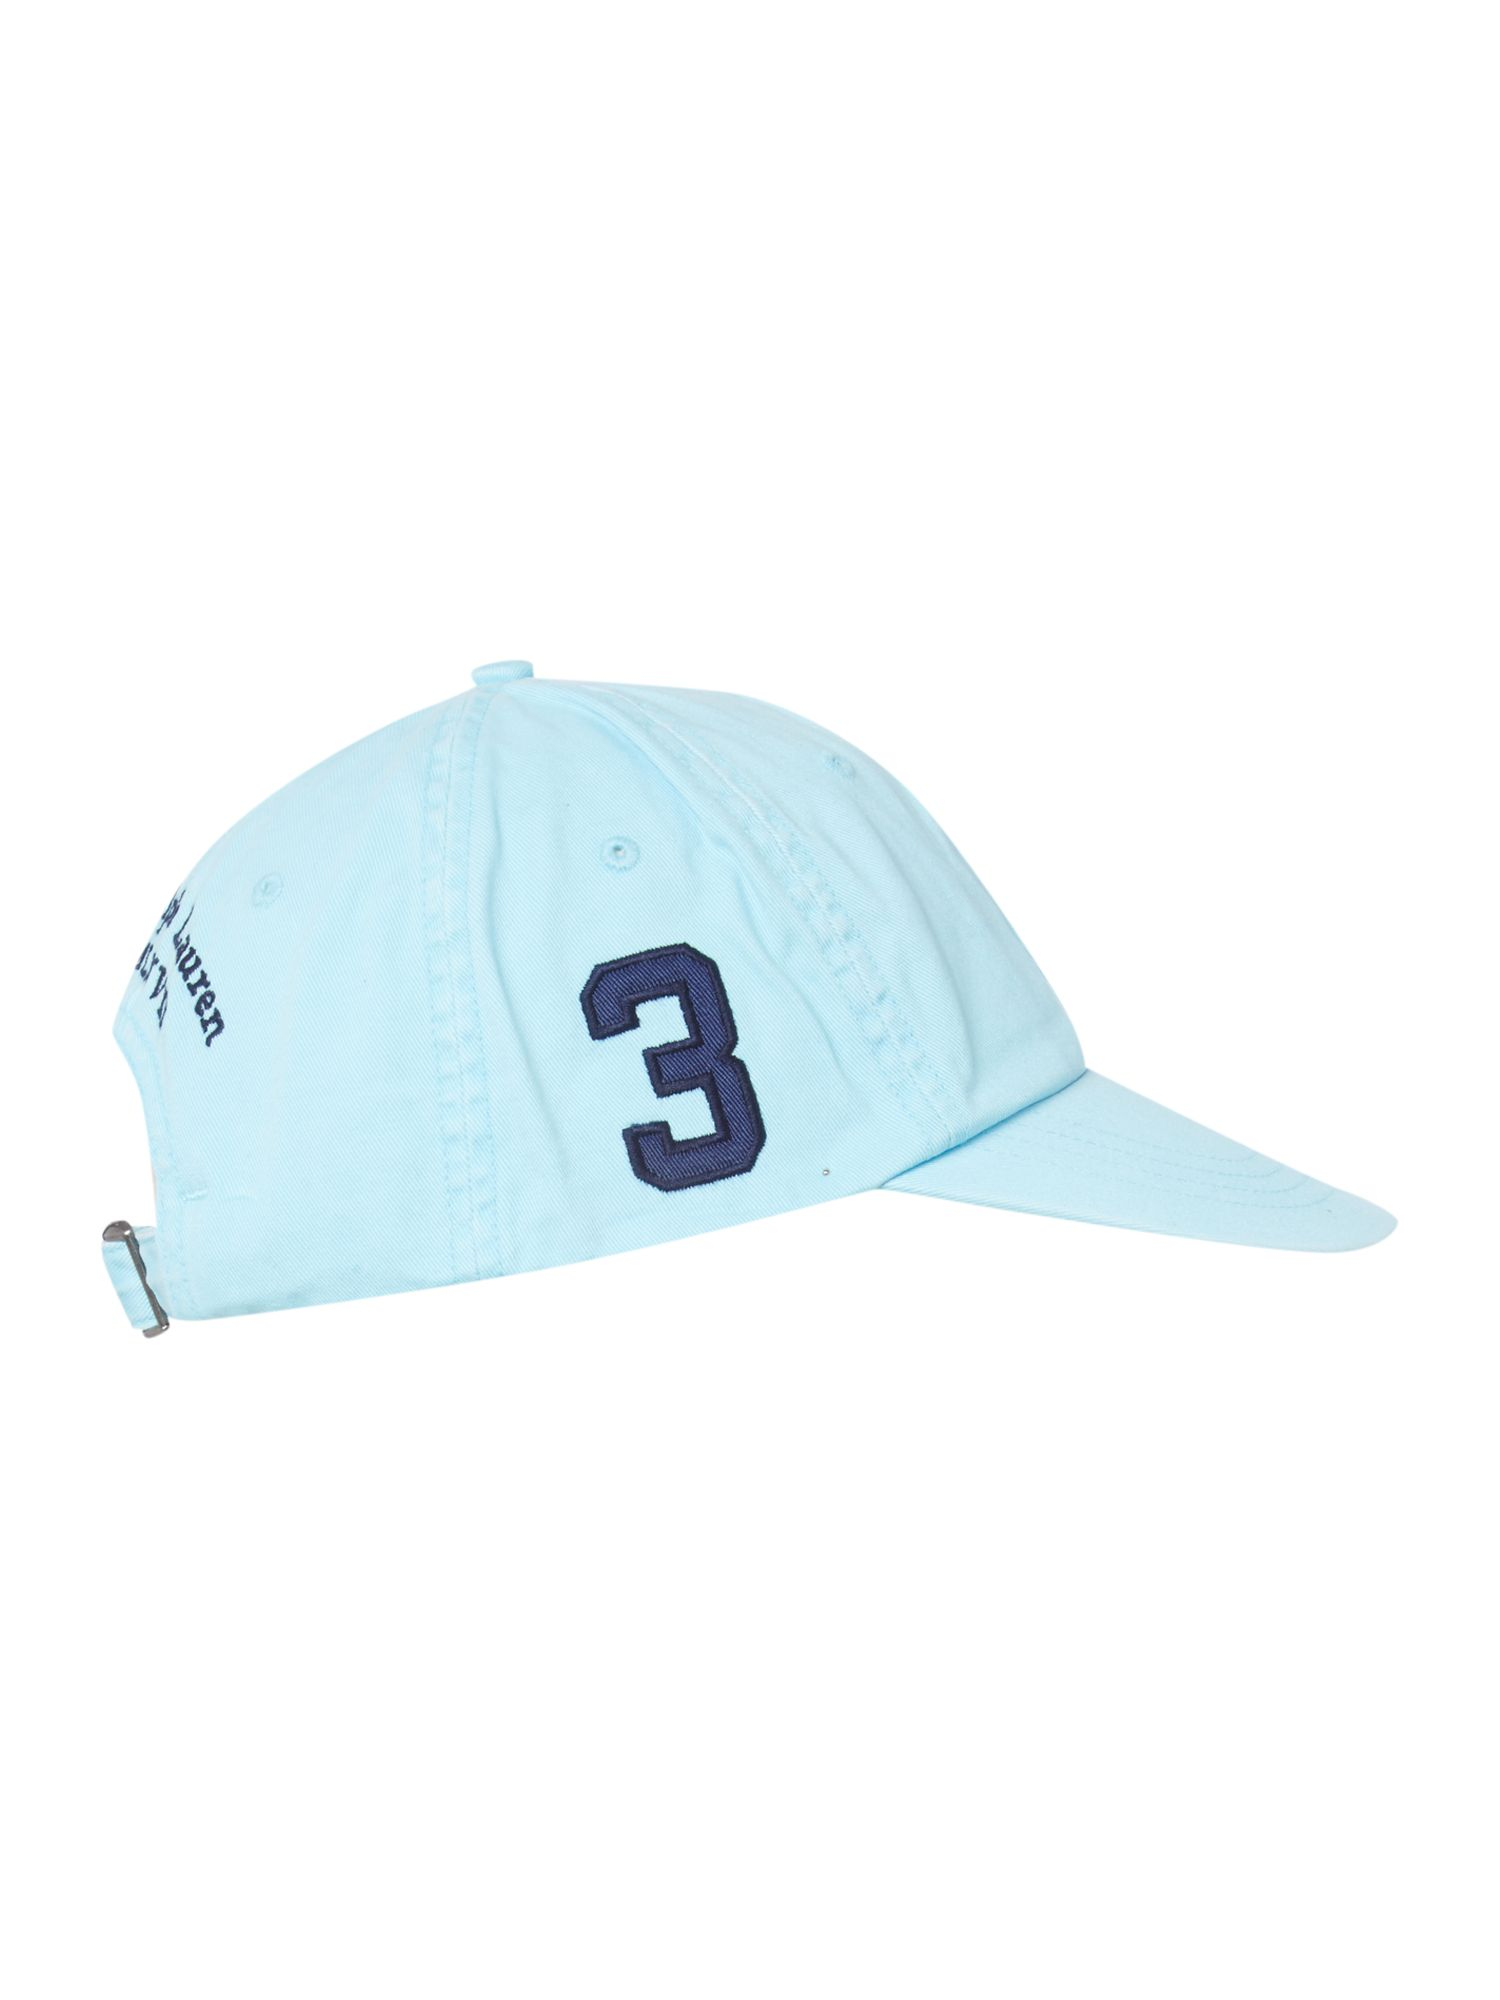 No3 polo pony logo cap